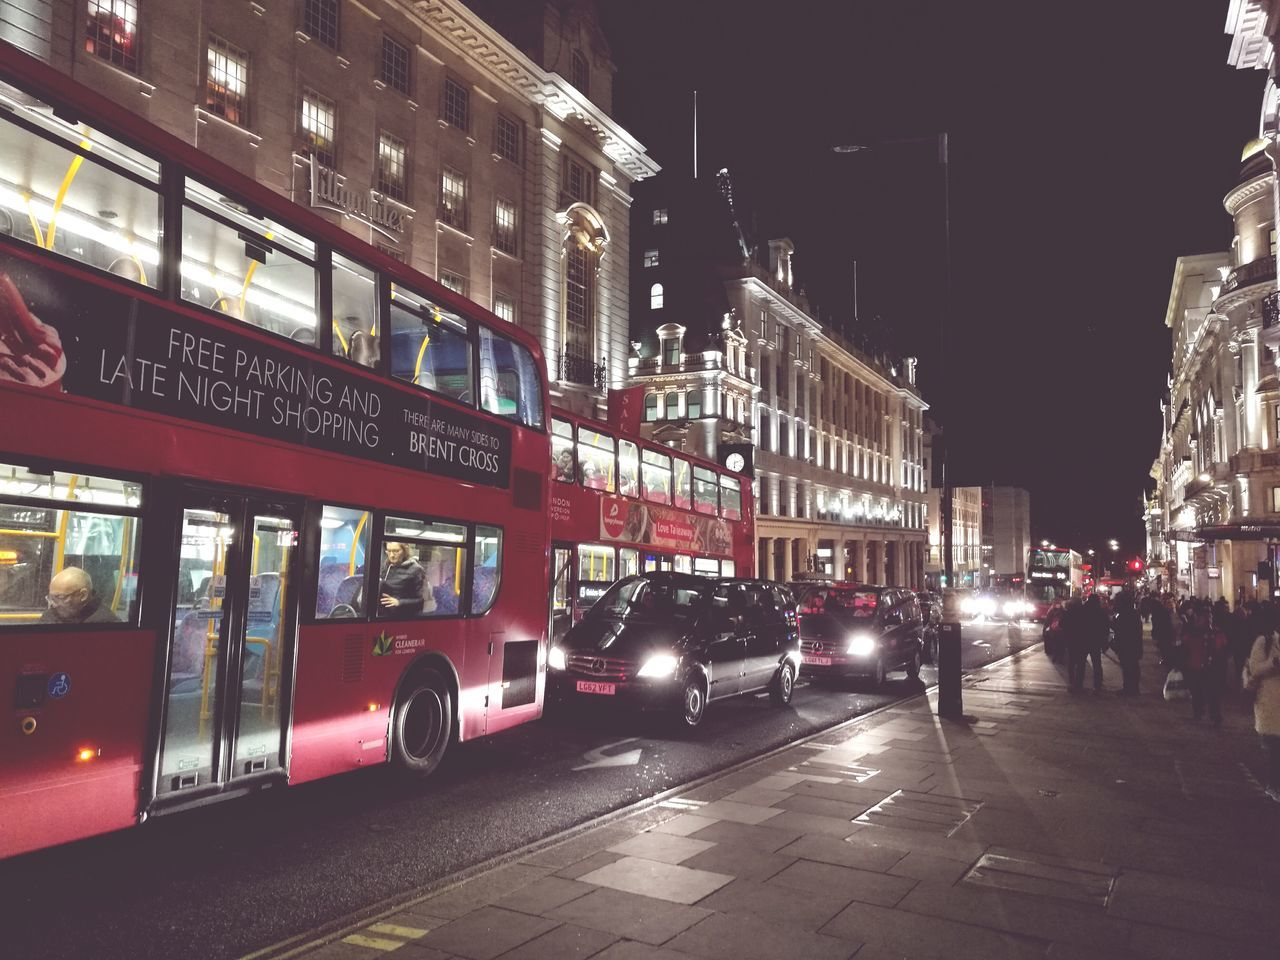 City Night Illuminated London Bus London By Night